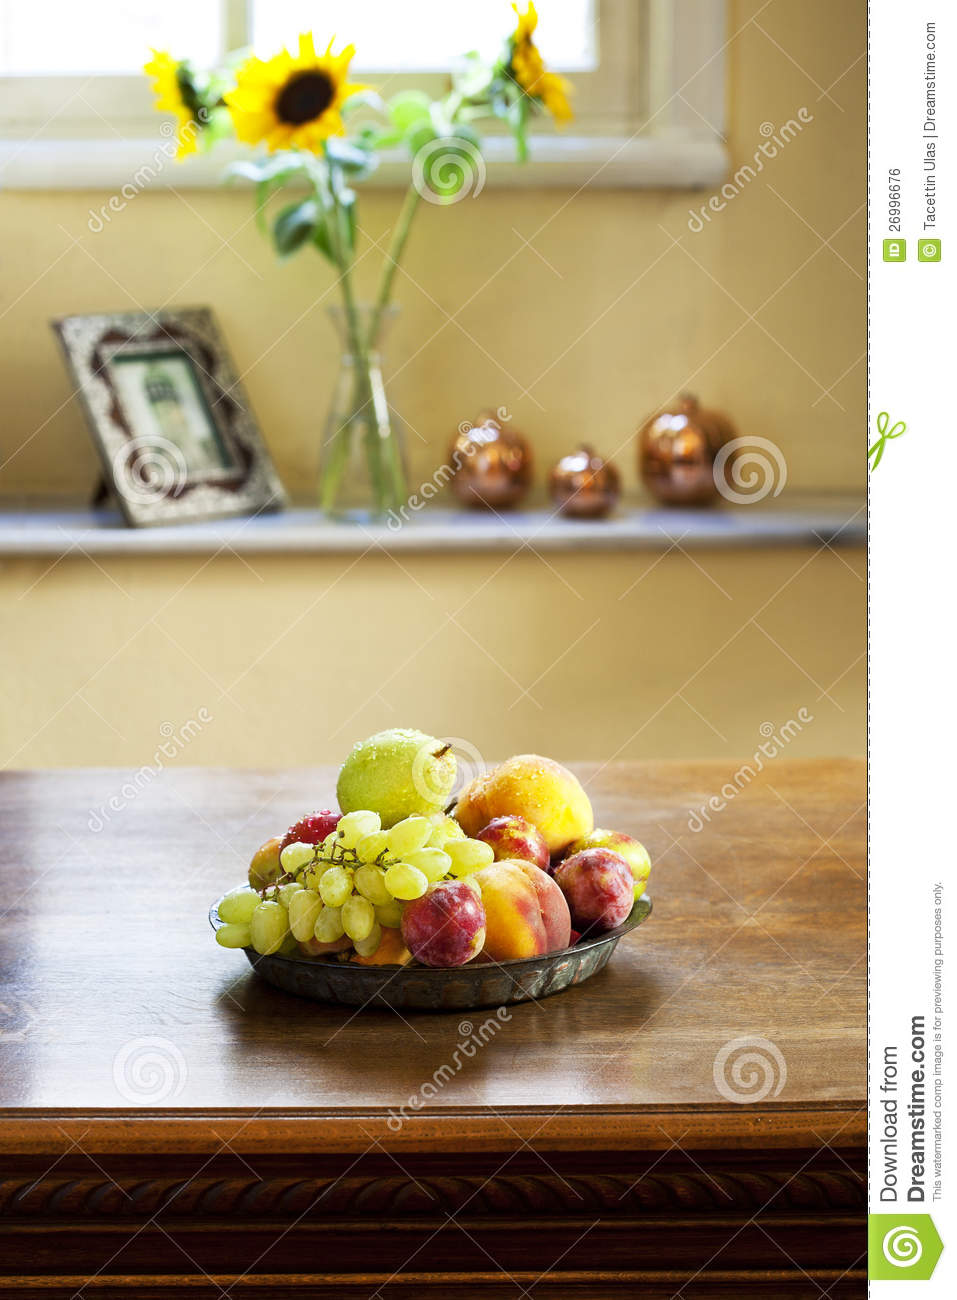 Fruit Plate Royalty Free Stock Image Image 26996676